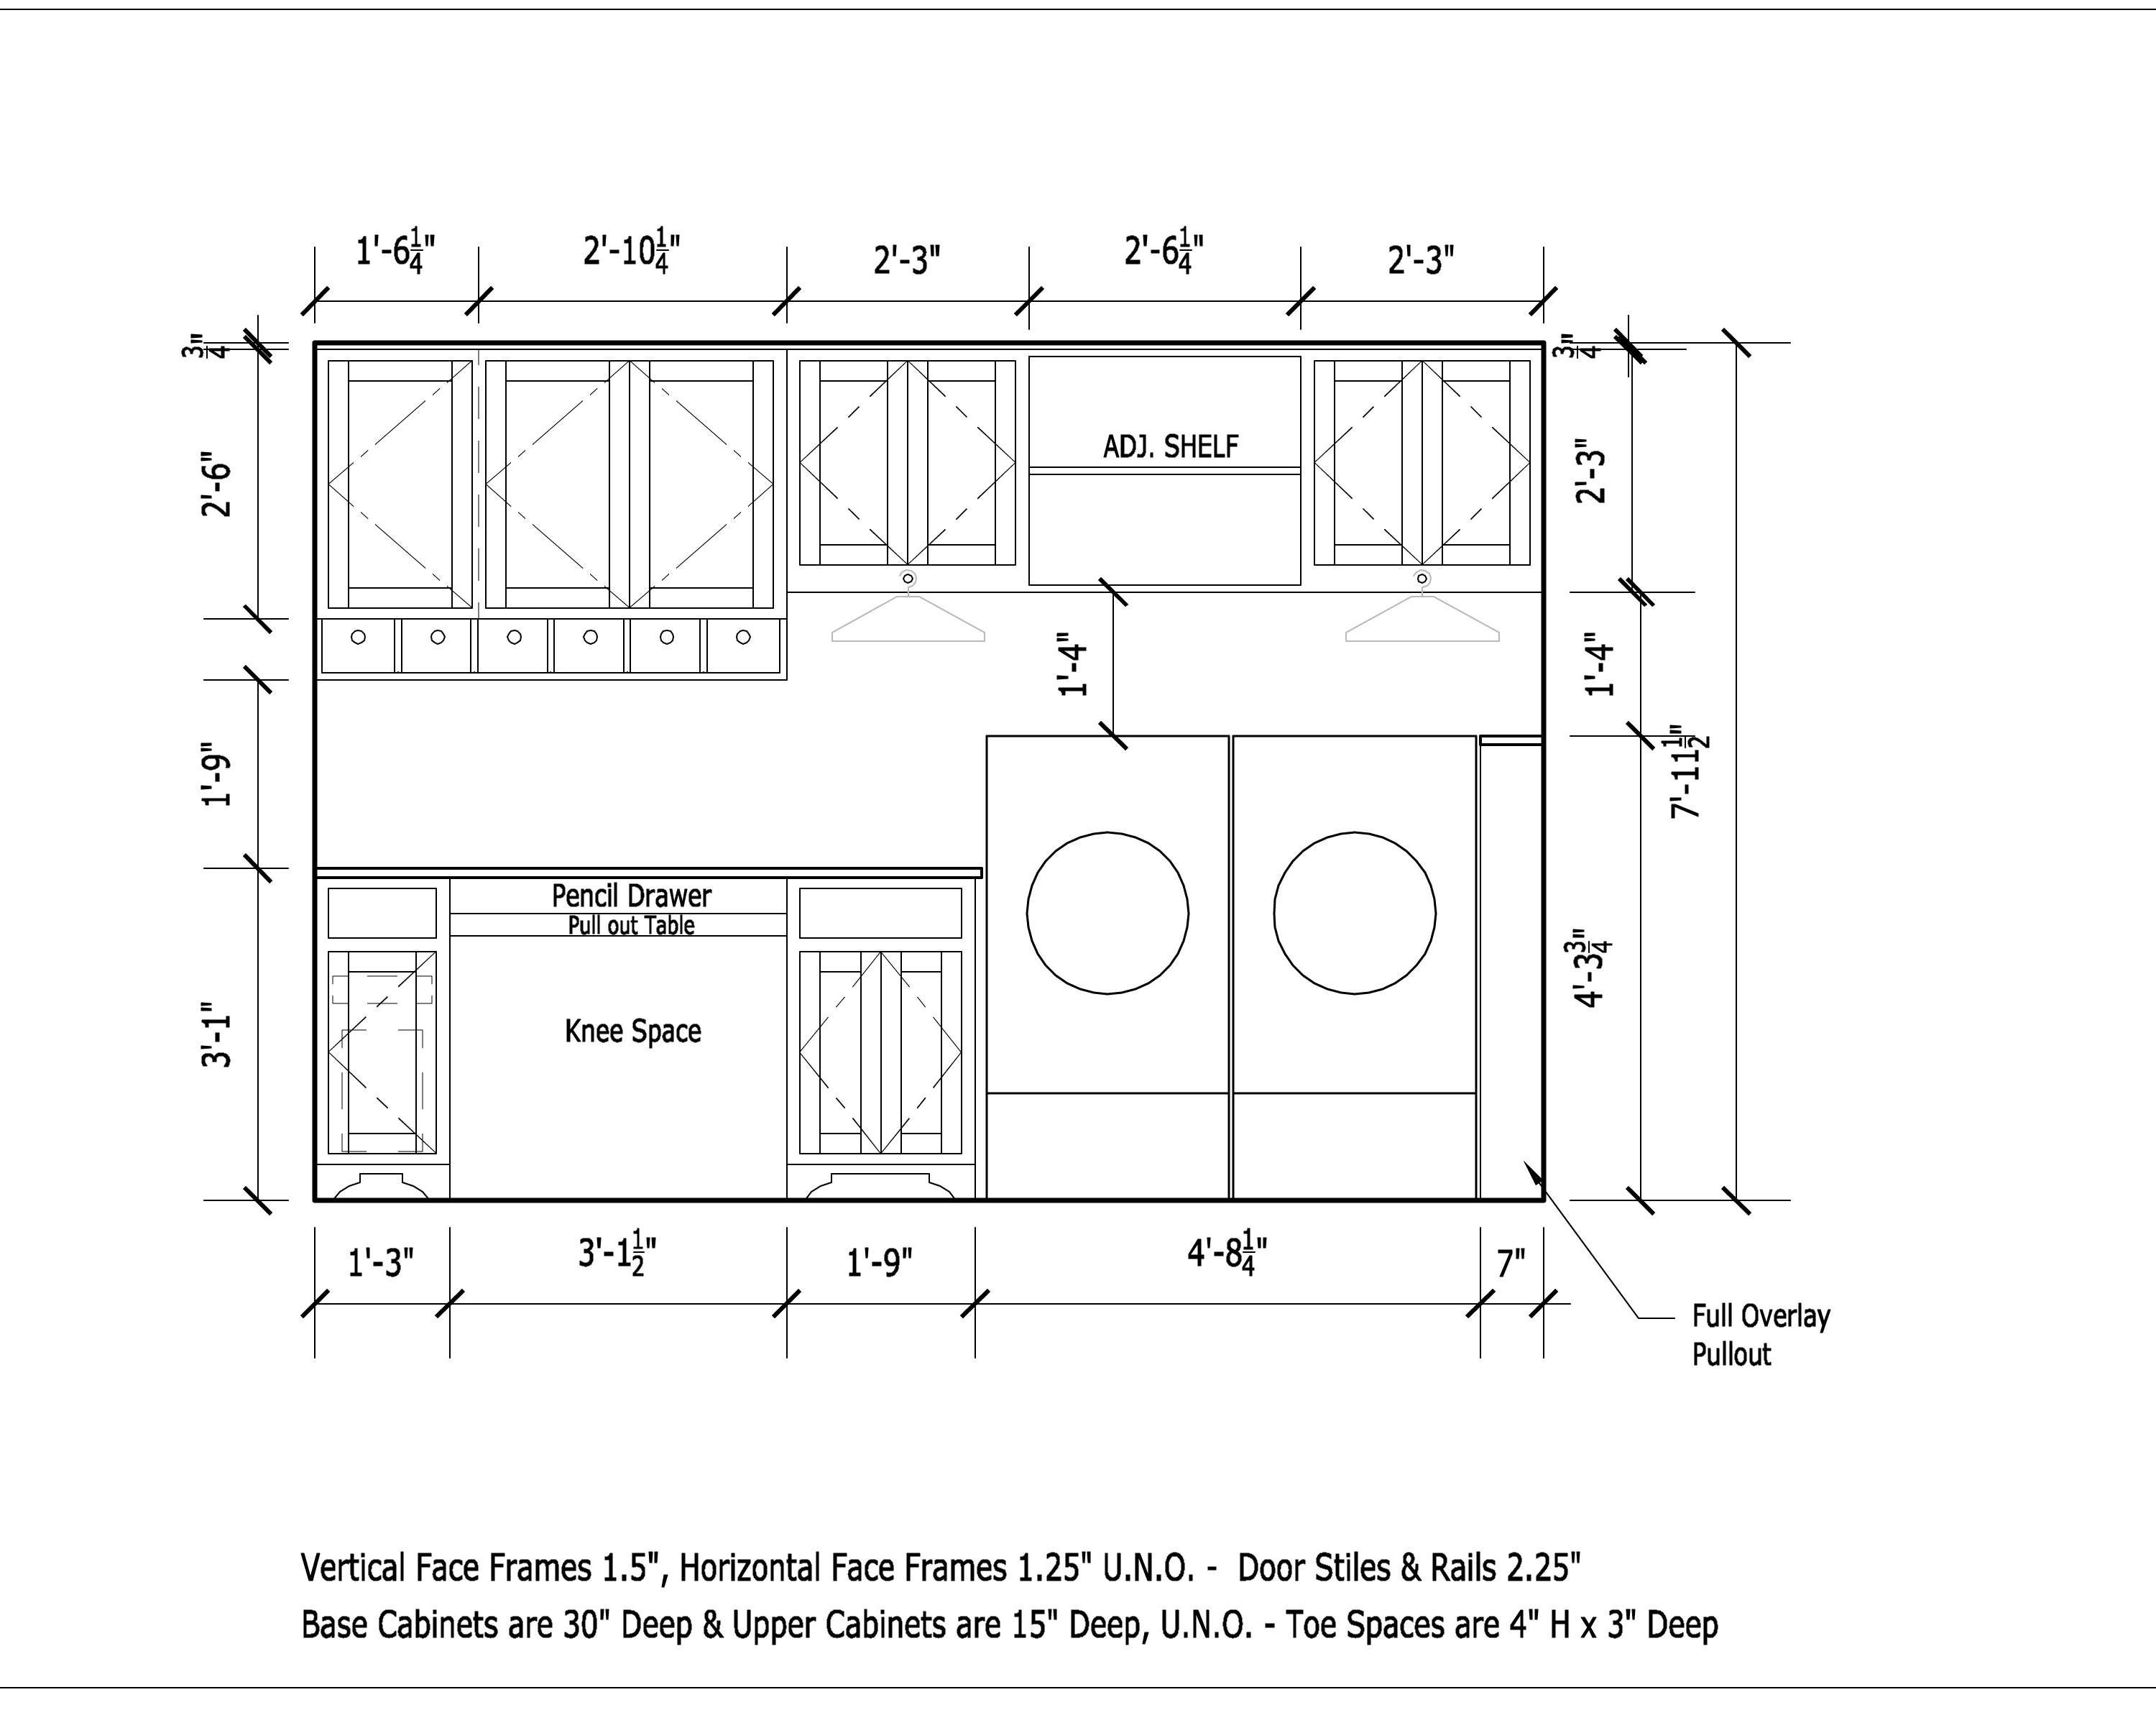 Best ideas about Laundry Room Floor Plans . Save or Pin Perfect Laundry Room Floor Plans 33 on Home Design Now.